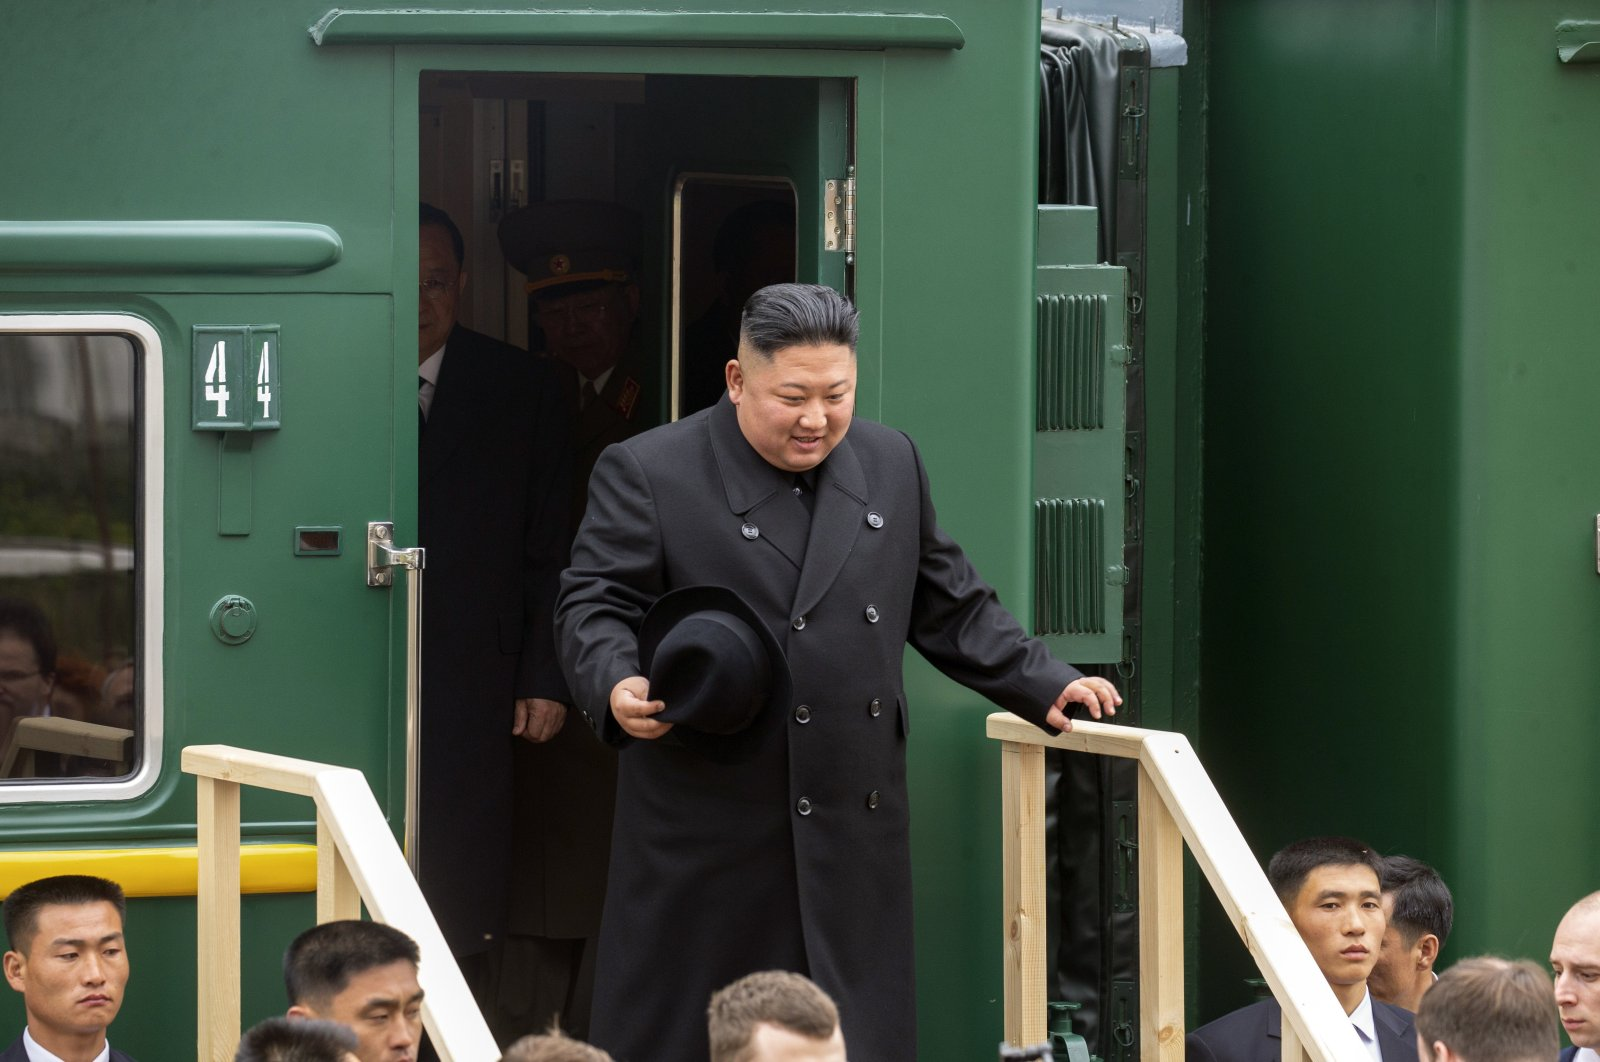 In this photo released by the press office of the administration of the Primorsky Krai region, North Korea's leader Kim Jong Un leaves a train carriage after arriving at the border station of Khasan, Primorsky Krai region, Russia, April 24, 2019. (AP Photo)